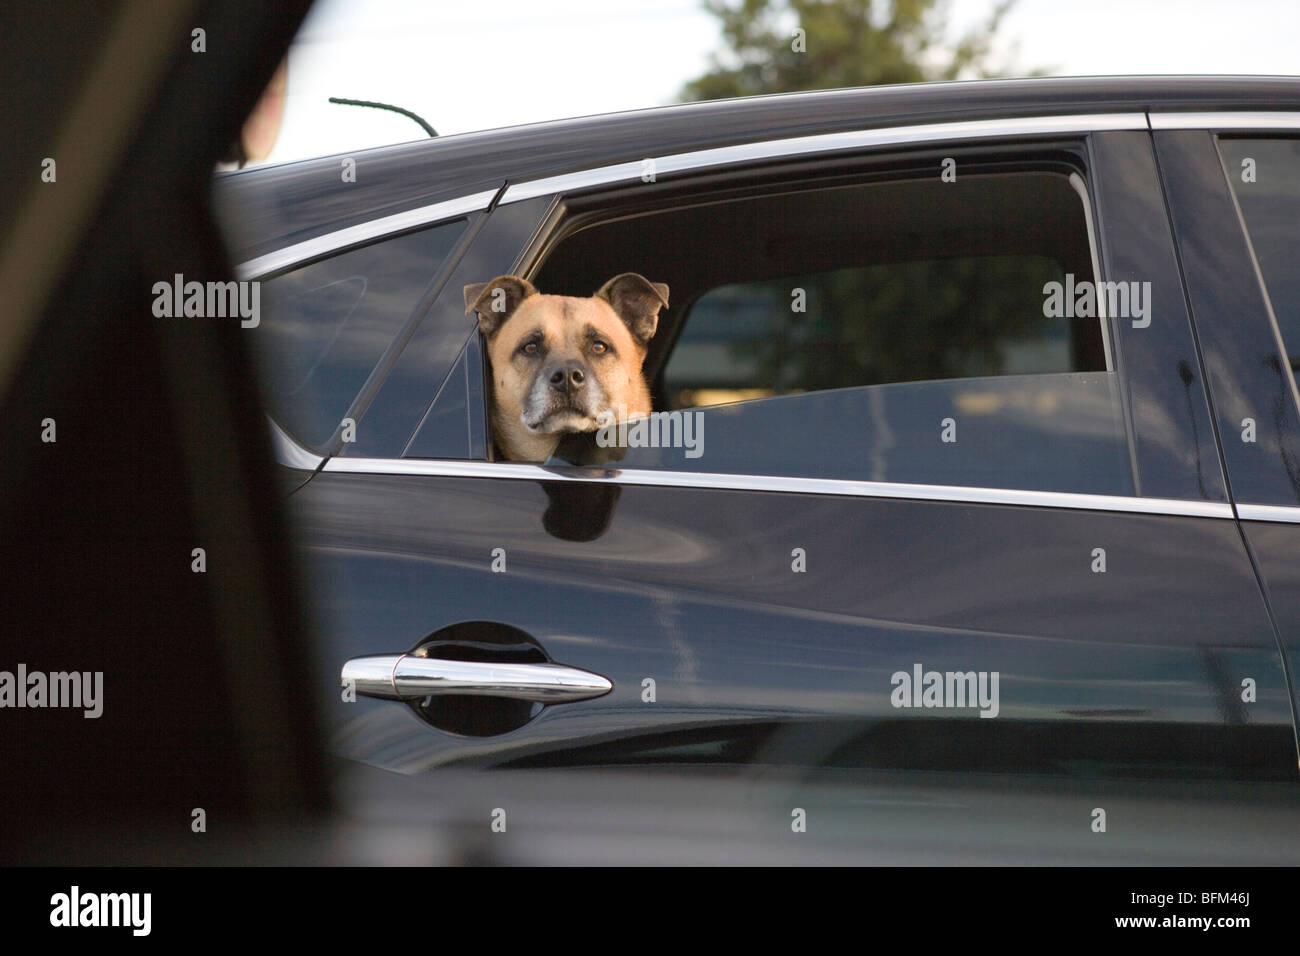 dog peeking out of a car window at an intersection - Stock Image